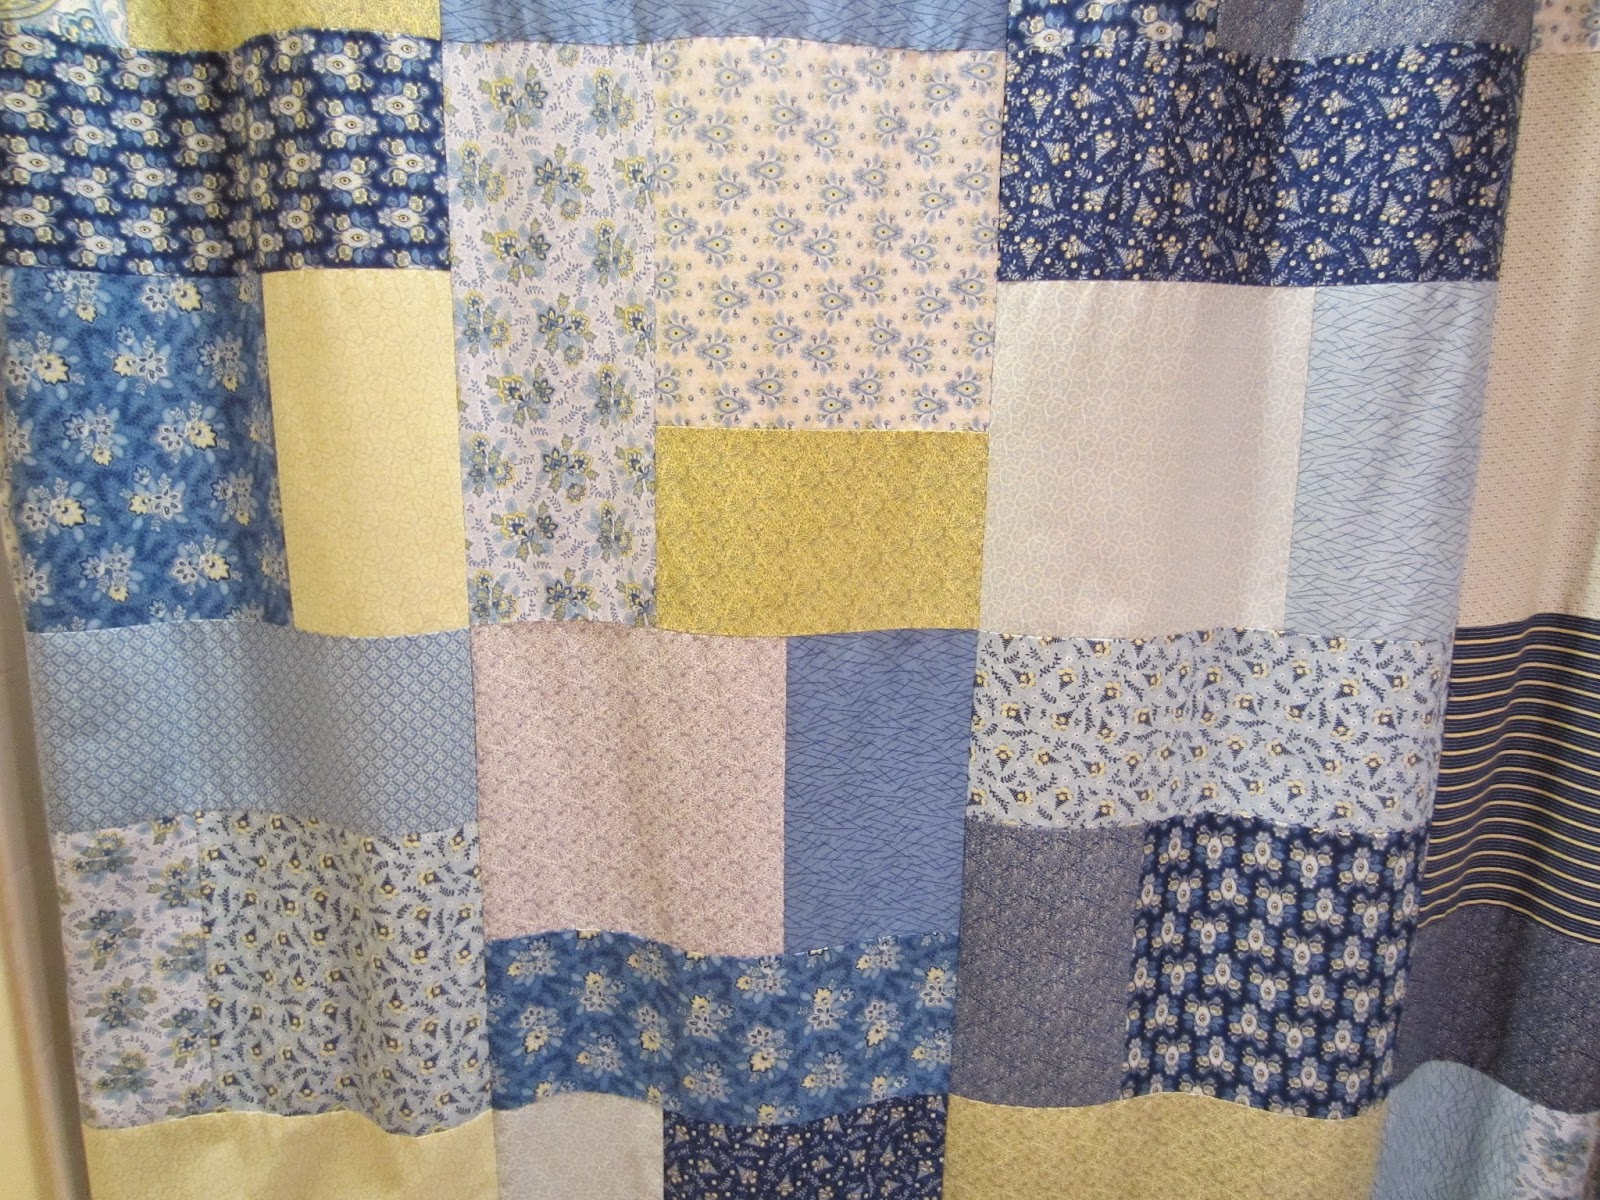 FROM A QUILT TOP TO SHOWER CURTAIN